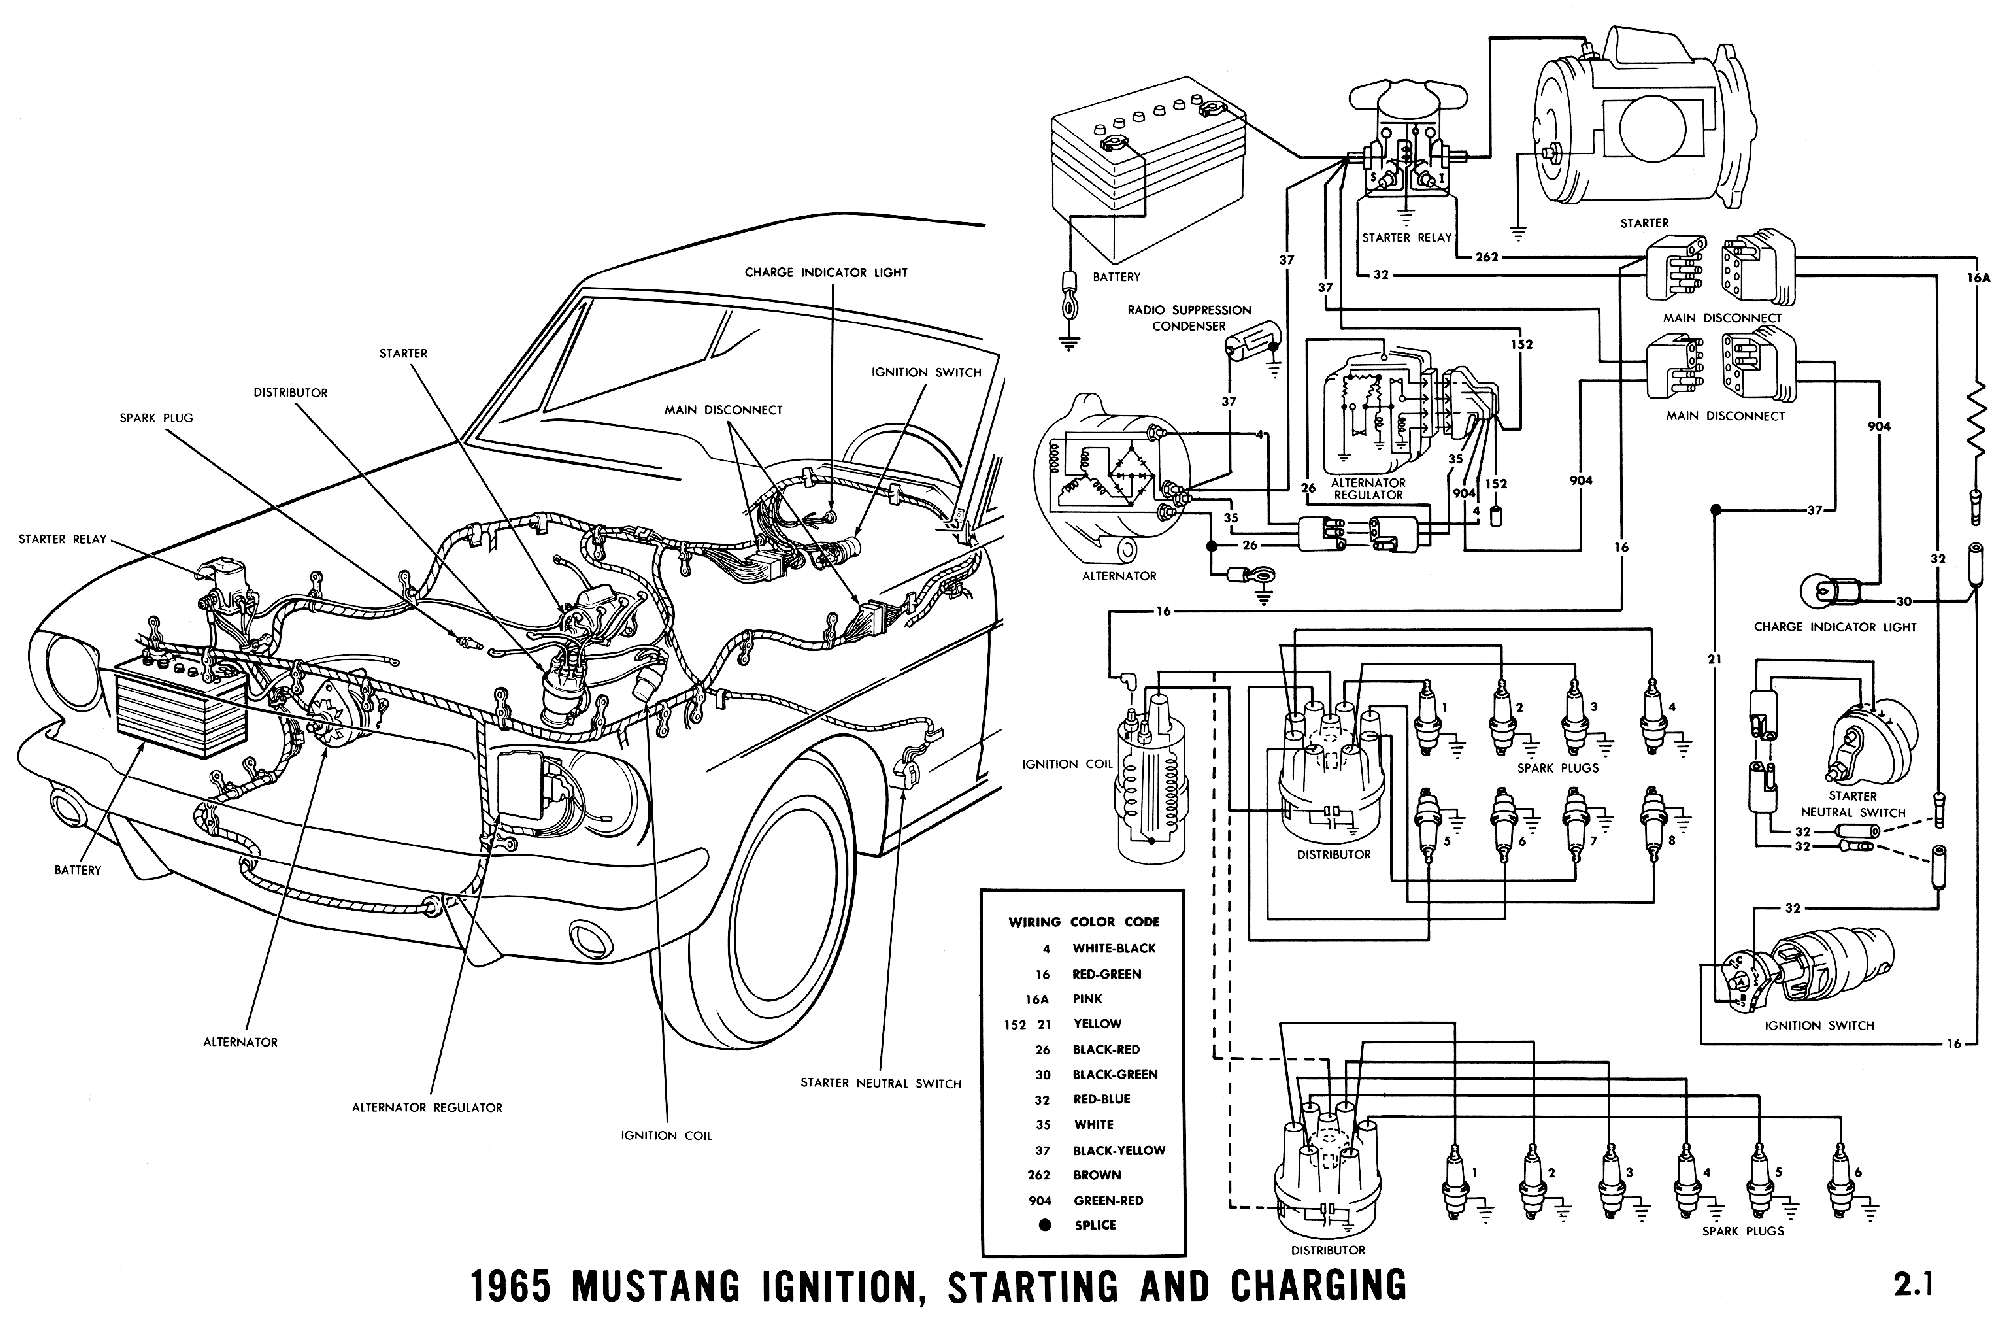 66 Mustang Wiring Diagram Wipers Library To Alternator Furthermore Plc Ladder Logic Diagrams 1965 Ignition Starting And Charging Pictorial Schematic